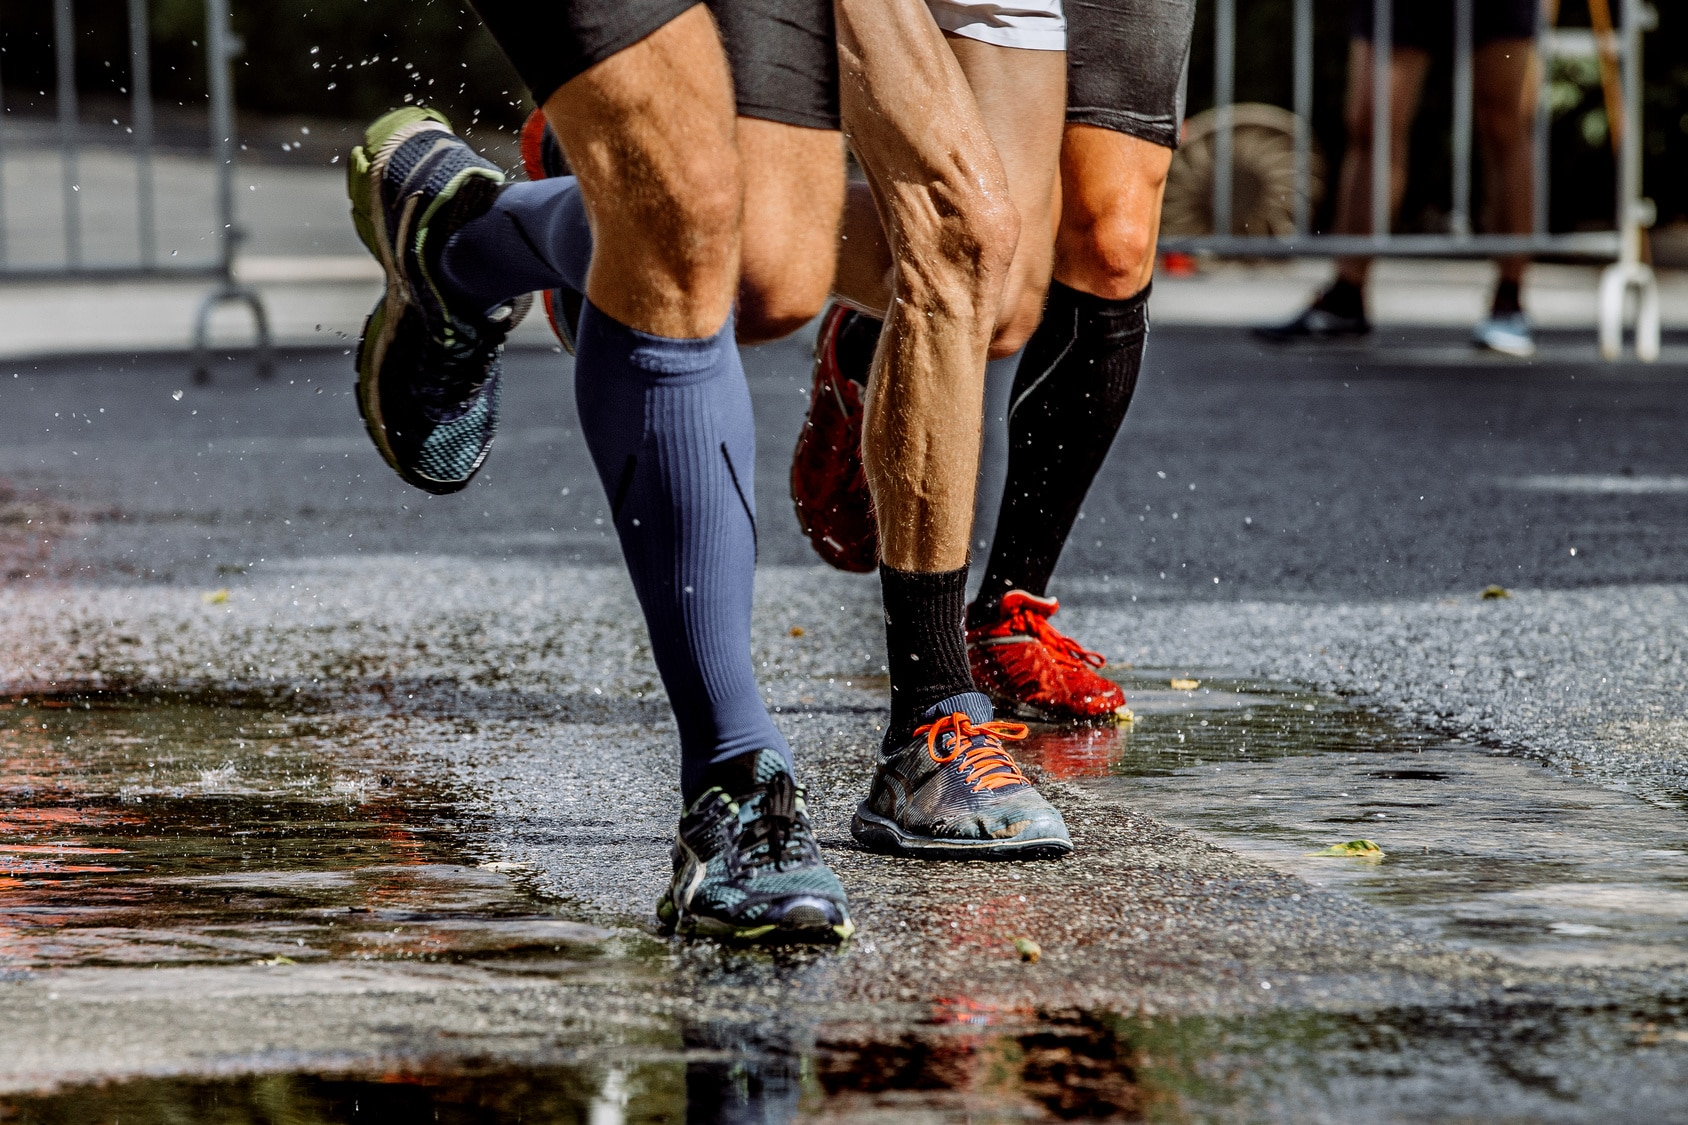 cca4d51288 How to Choose the Right Running Socks — Runners Blueprint